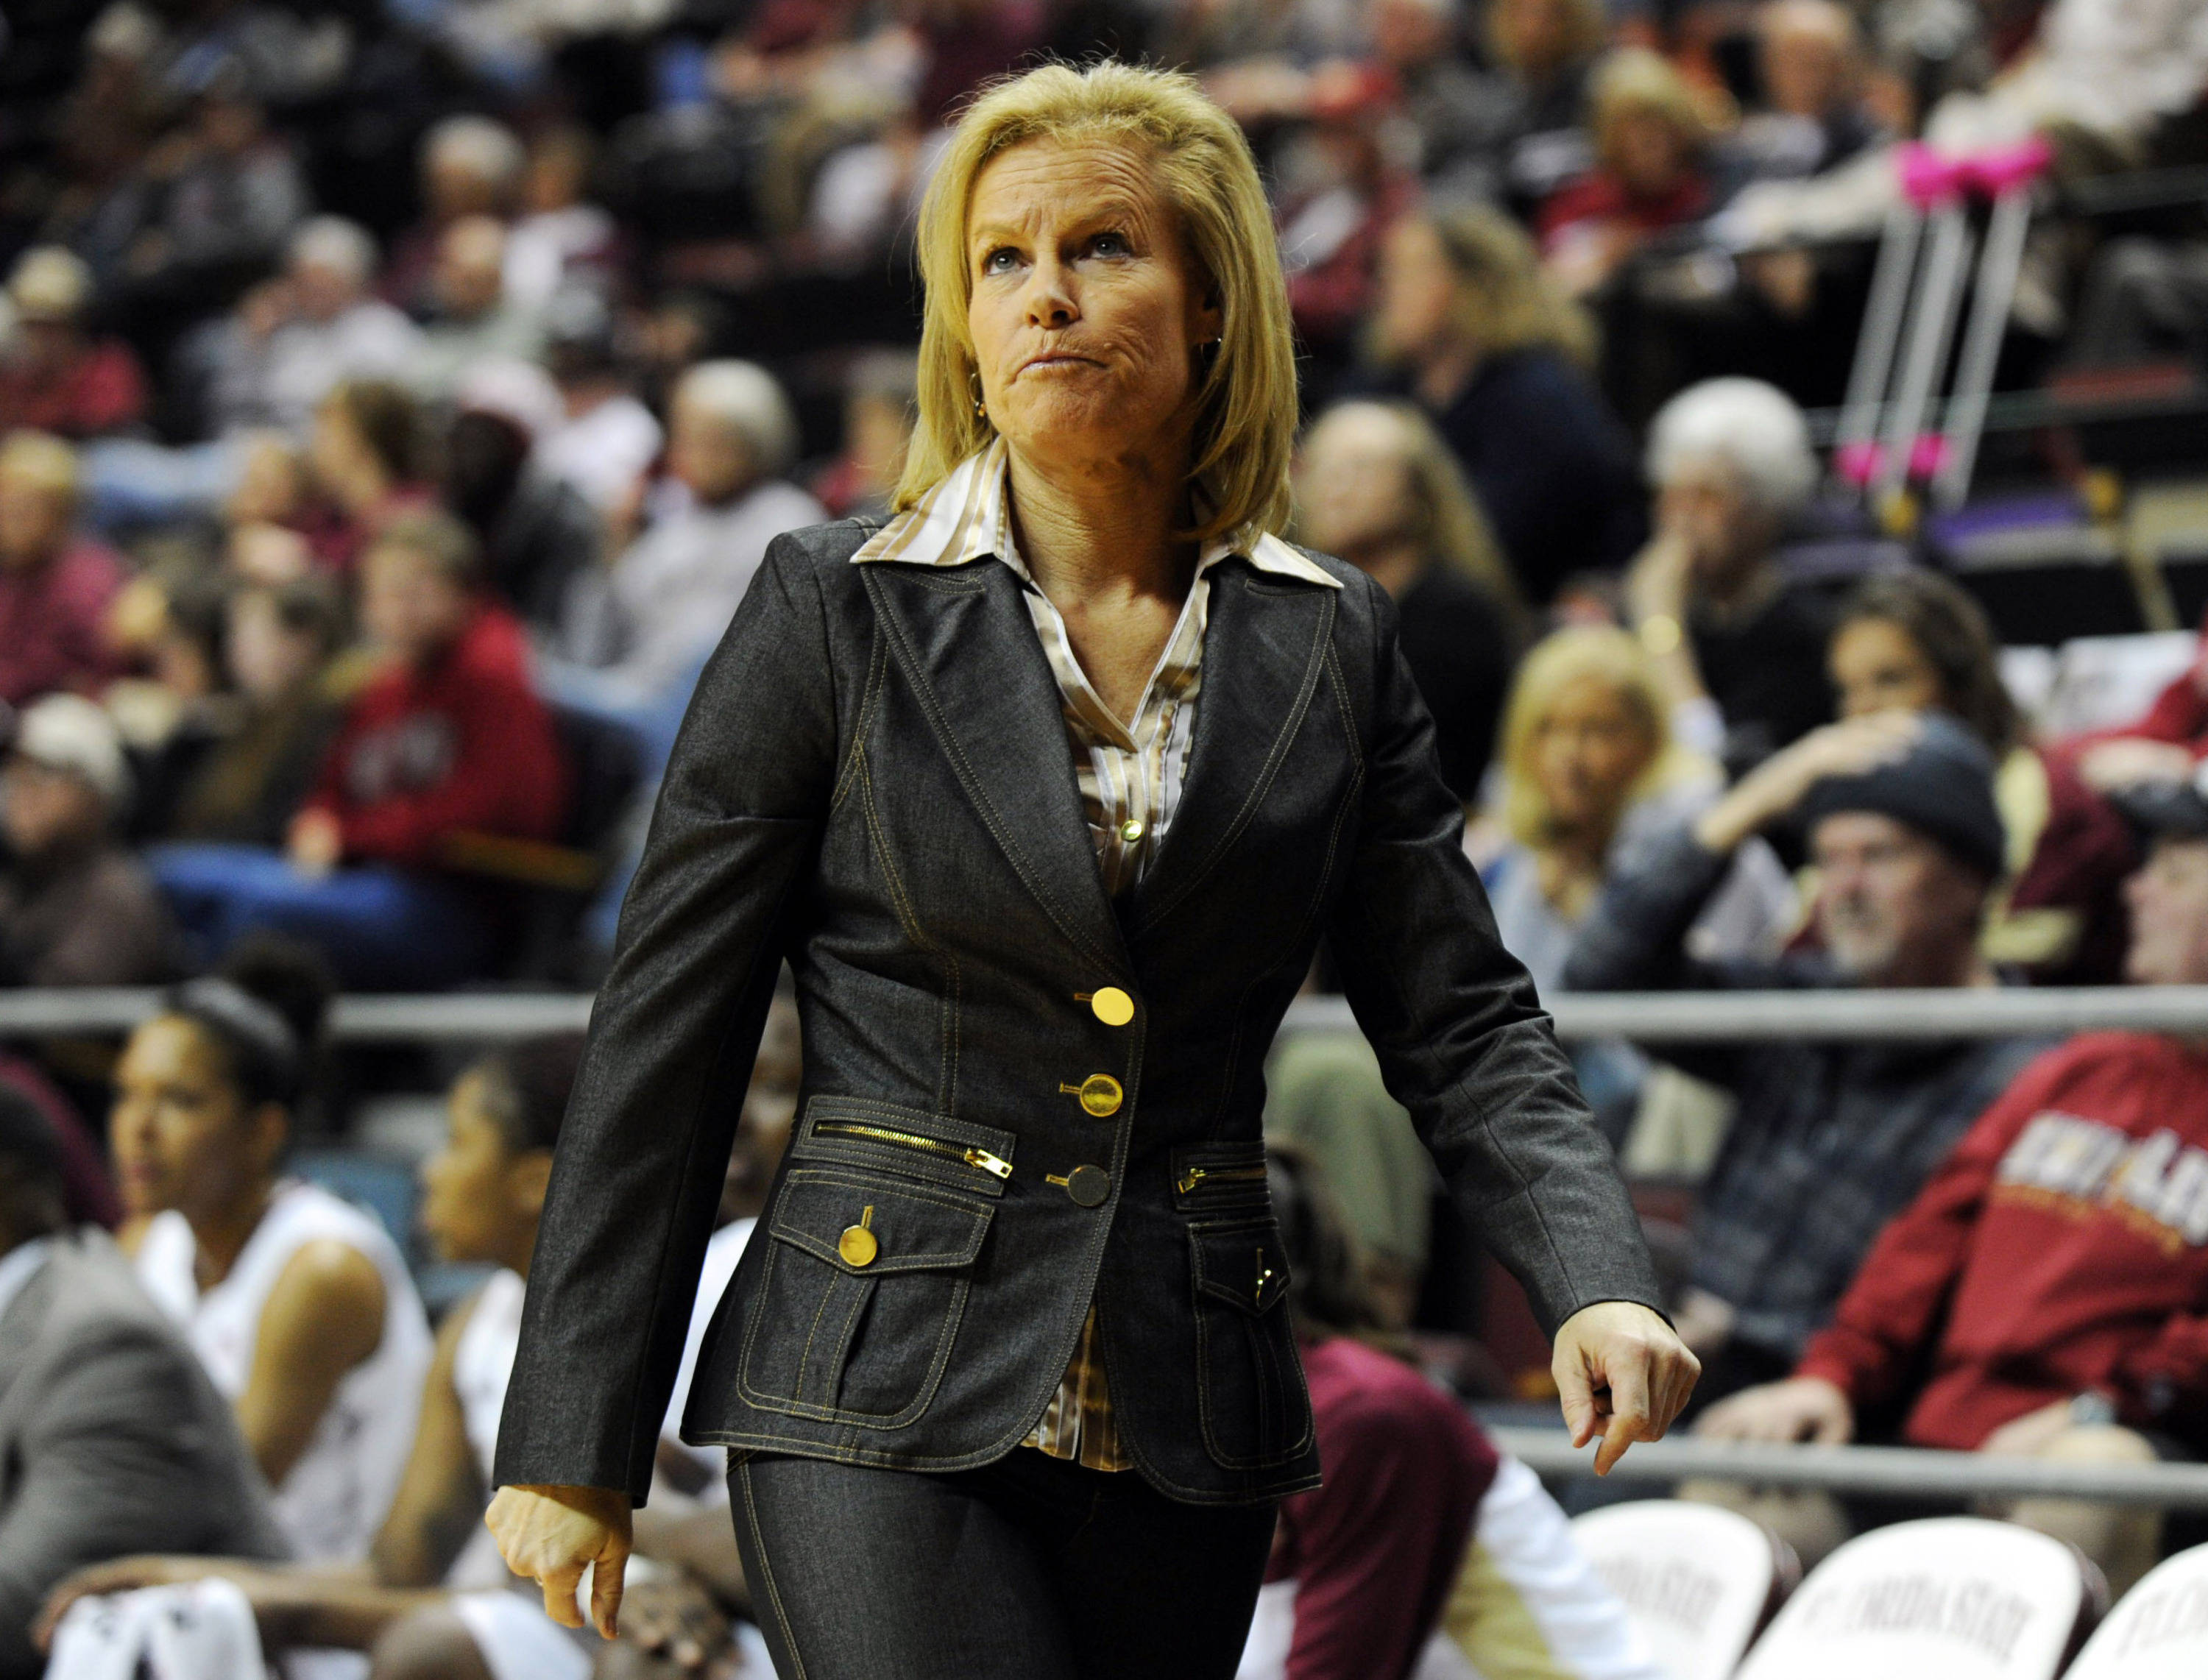 Jan 23, 2014; Tallahassee, FL, USA; Florida State Seminoles head coach Sue Semrau during the first half of the game against the Duke Blue Devils at the Donald L. Tucker Center (Tallahassee). Mandatory Credit: Melina Vastola-USA TODAY Sports